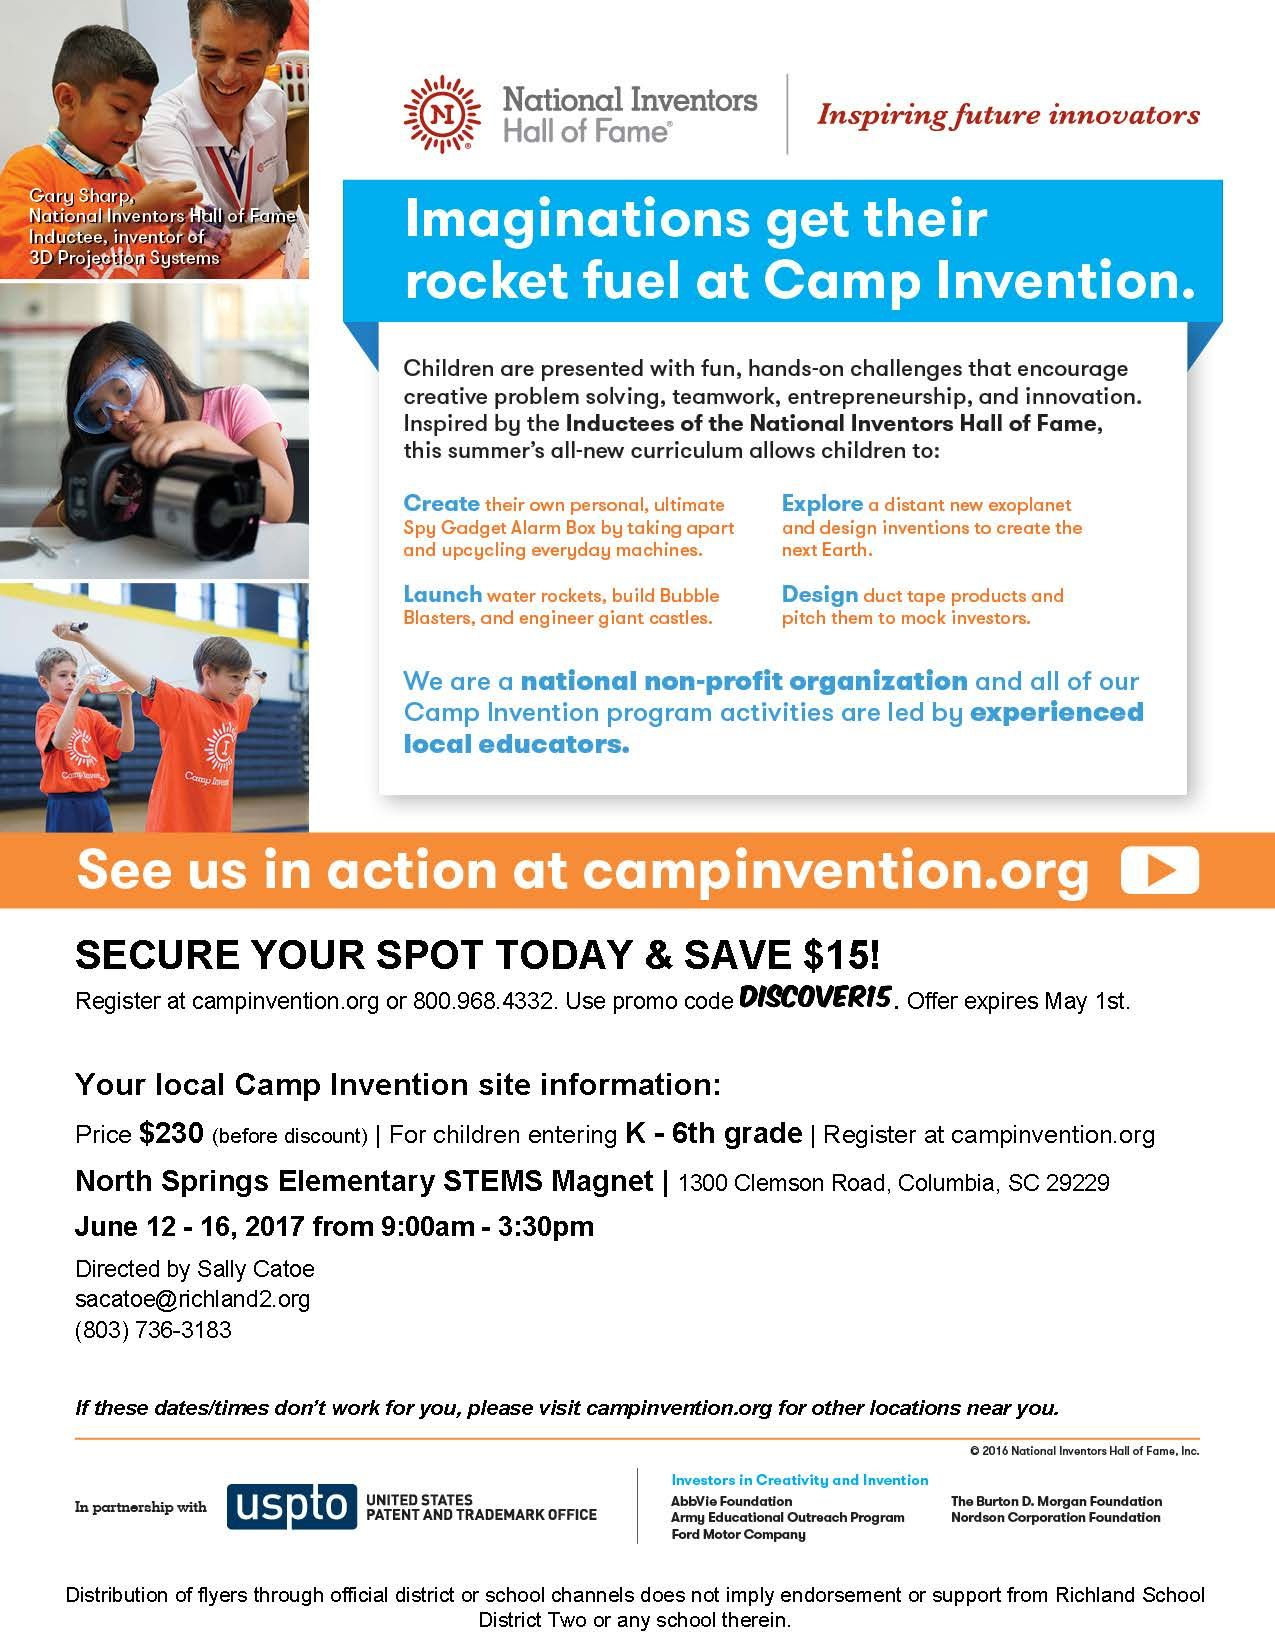 Camp Invention At North Springs Elementary School